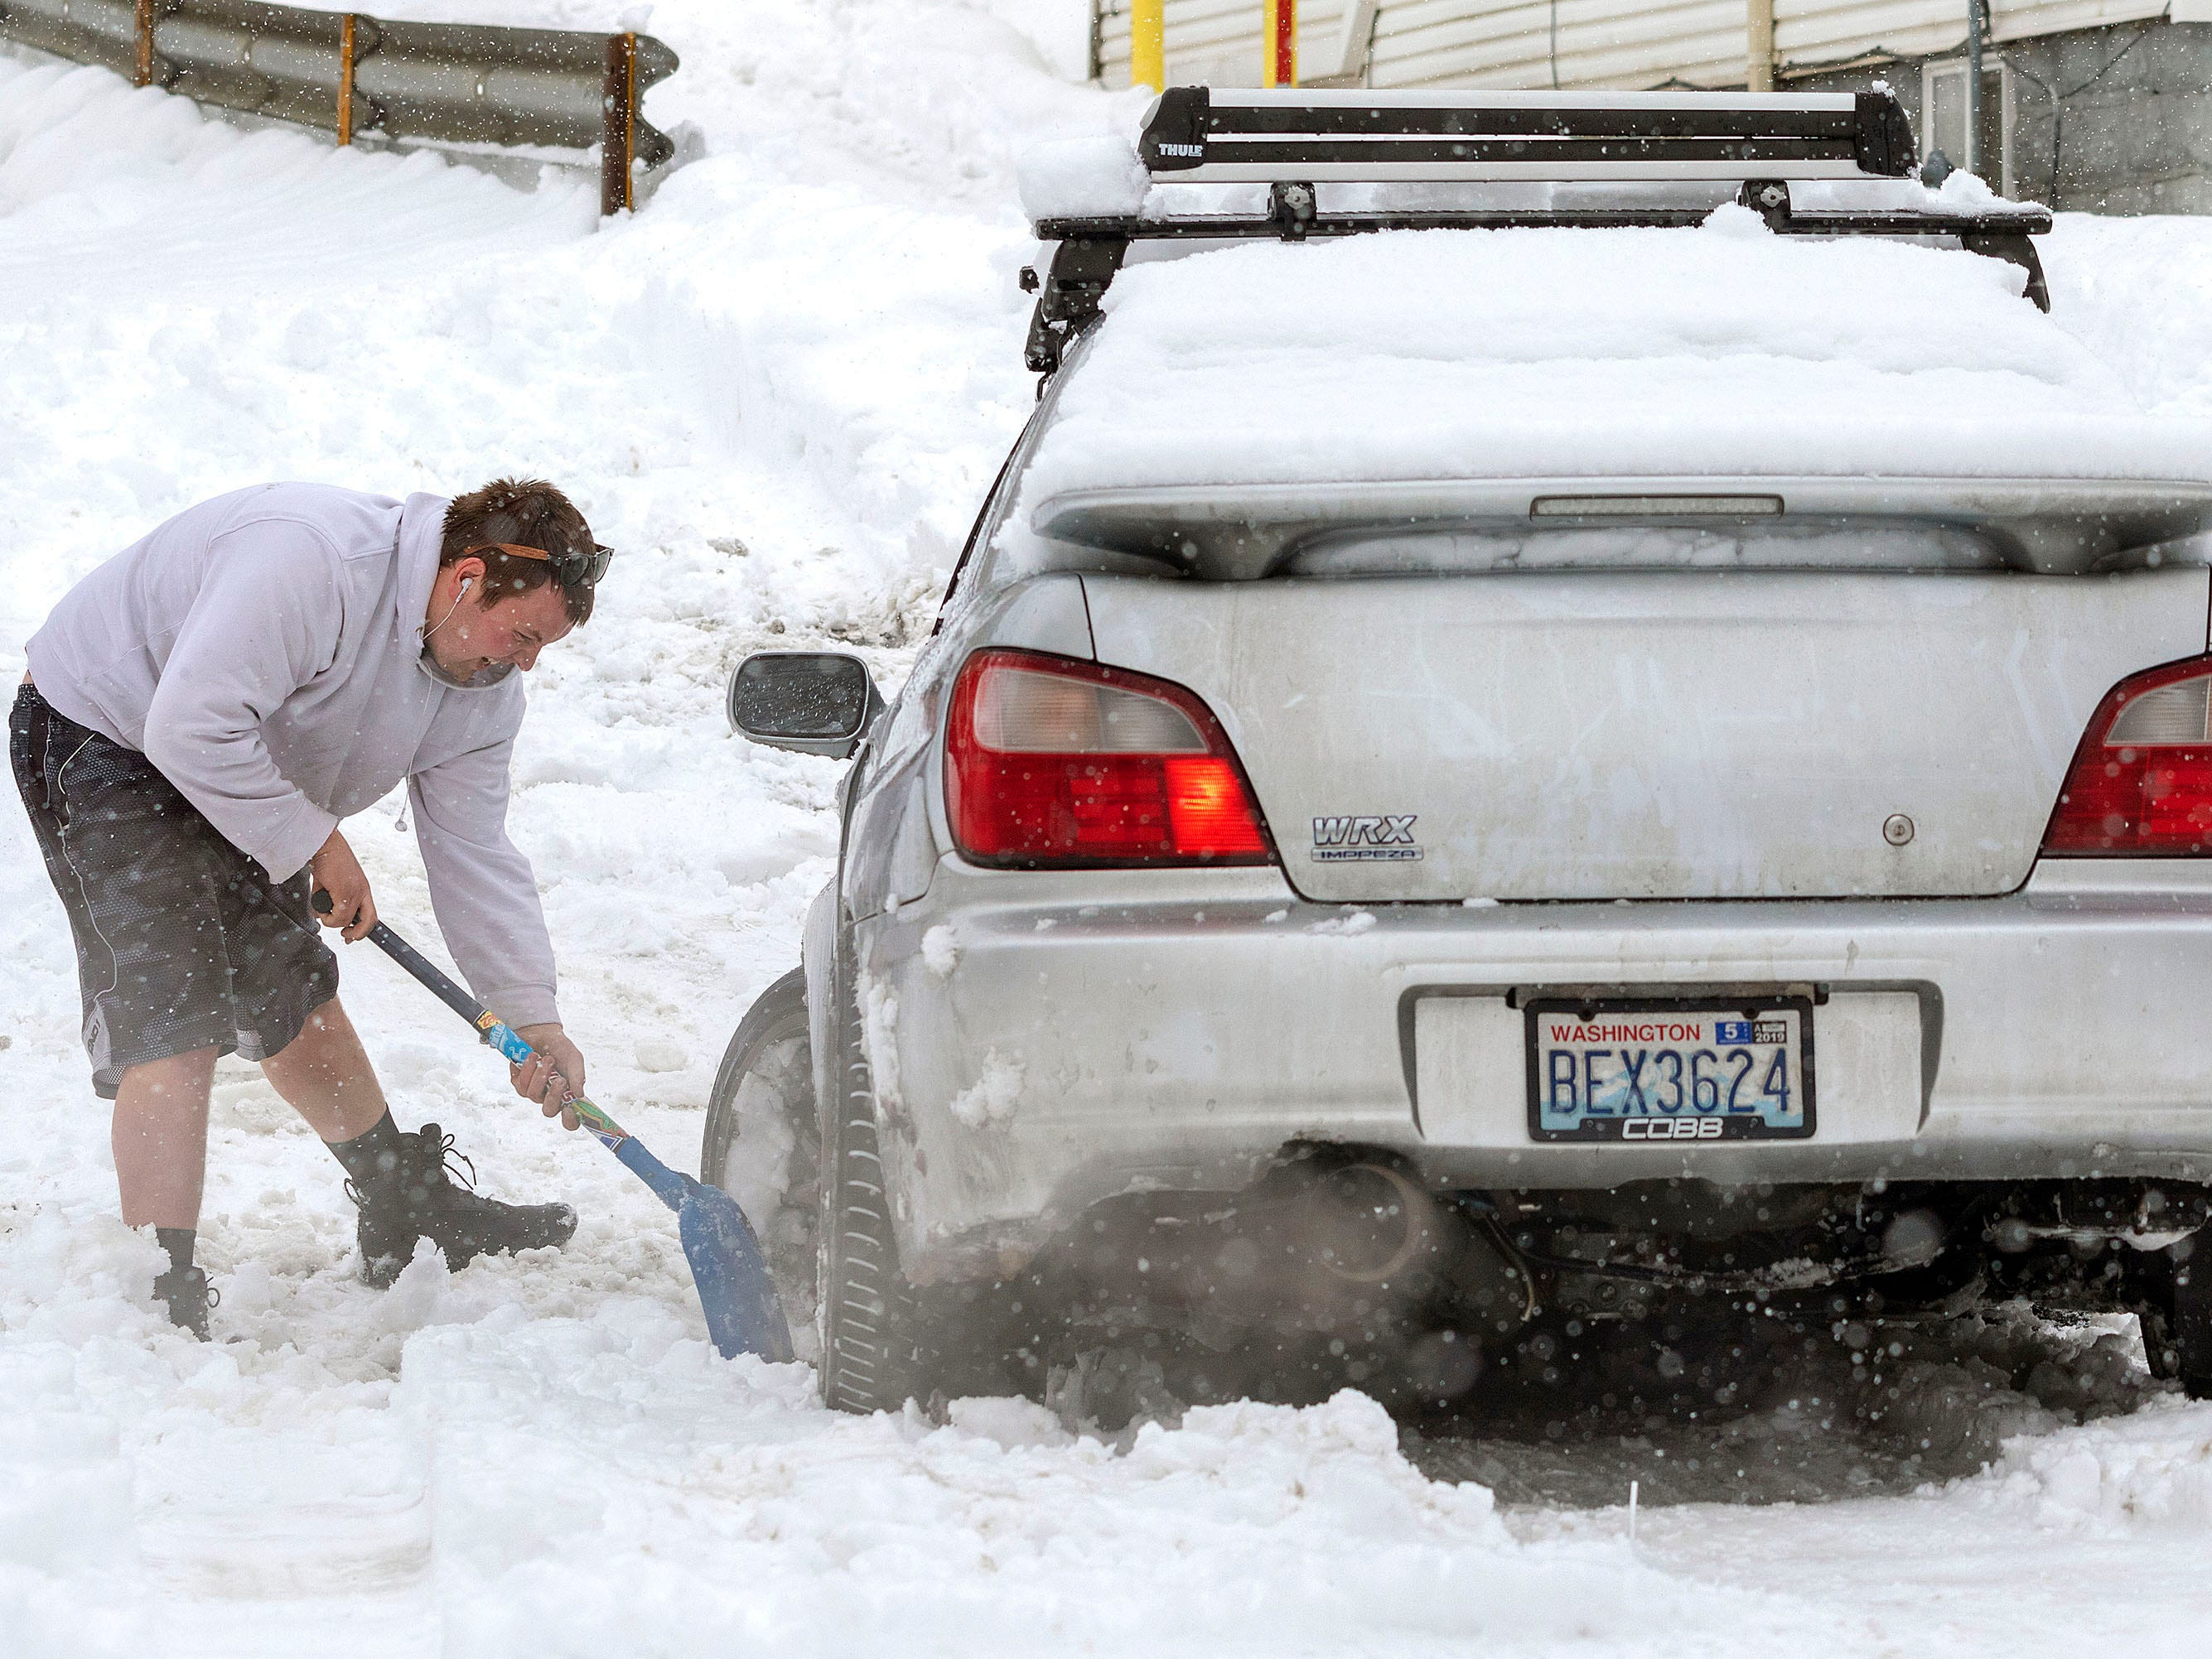 A motorist works to get his stuck car out of his driveway on Feb. 13, 2019, during a snow storm in Pullman, Wash.